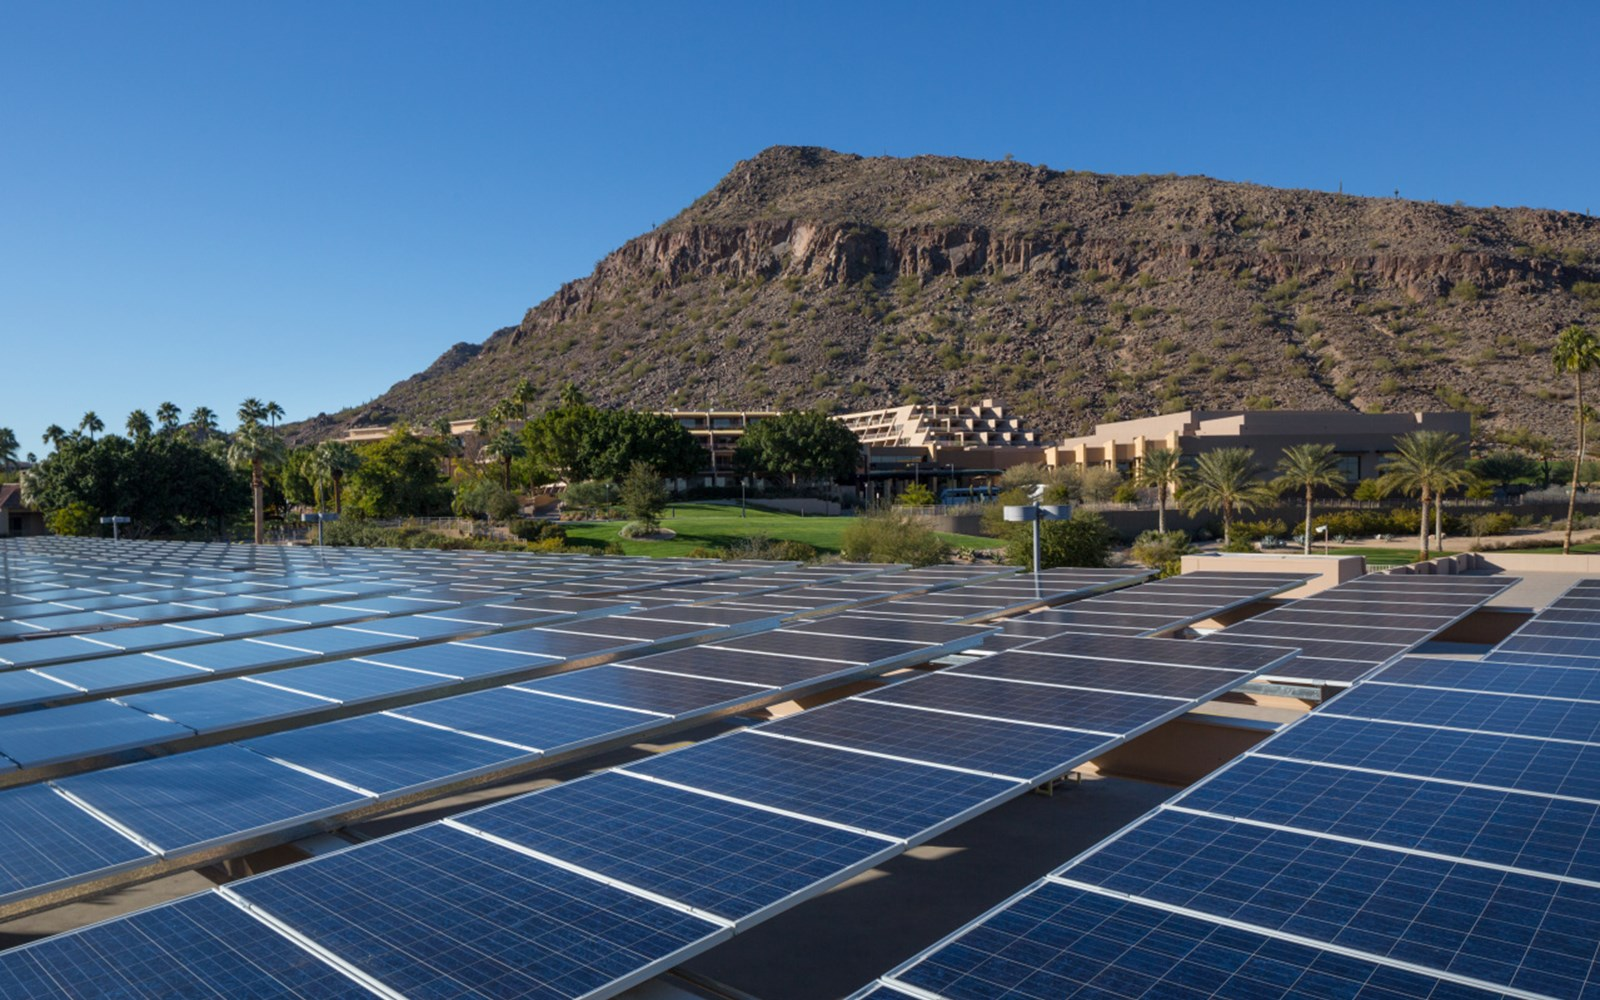 Solar panels on top of parking garage with mountain in background